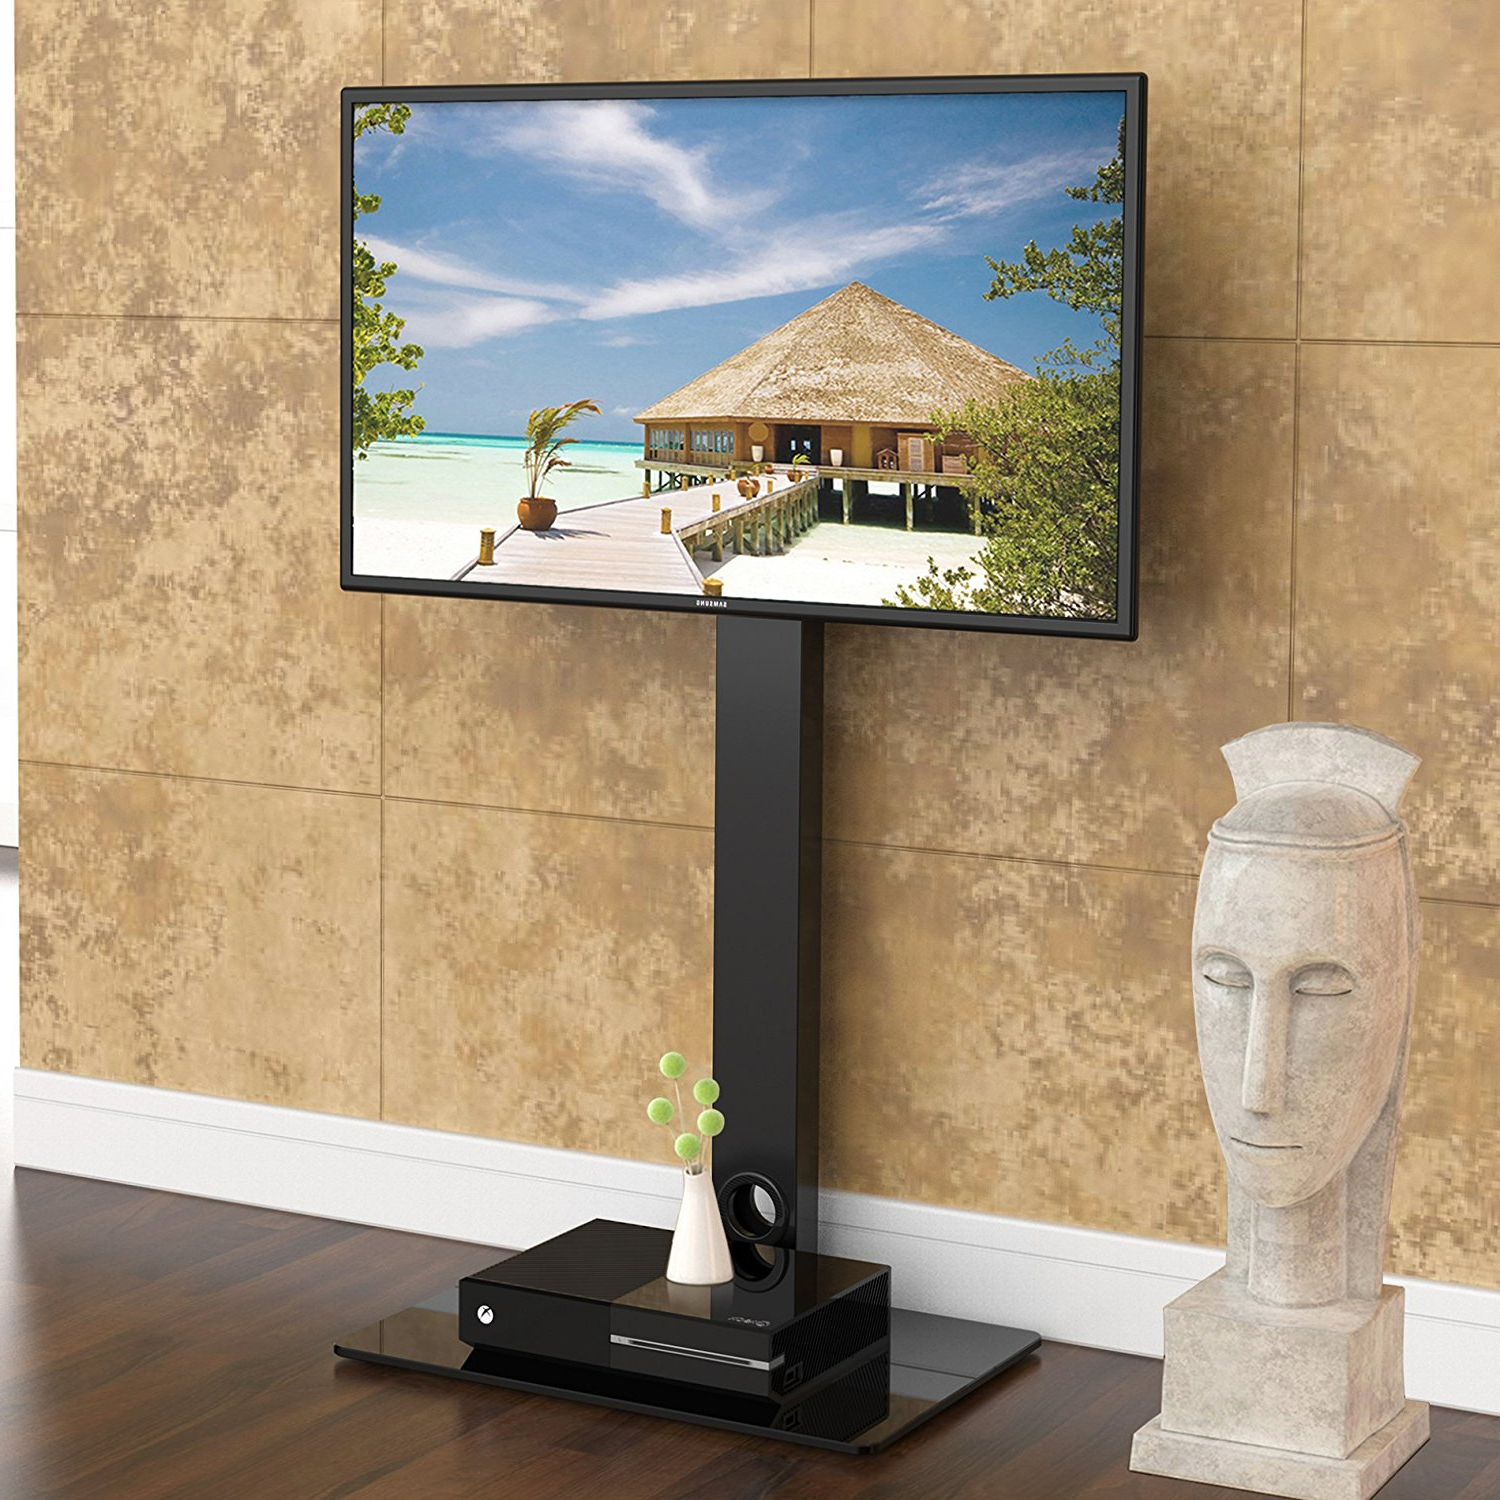 Newest Fitueyes Floor Tv Stand With Swivel Mount For 32 To 55 Inch Tvs Throughout Swivel Tv Stands With Mount (Gallery 15 of 20)